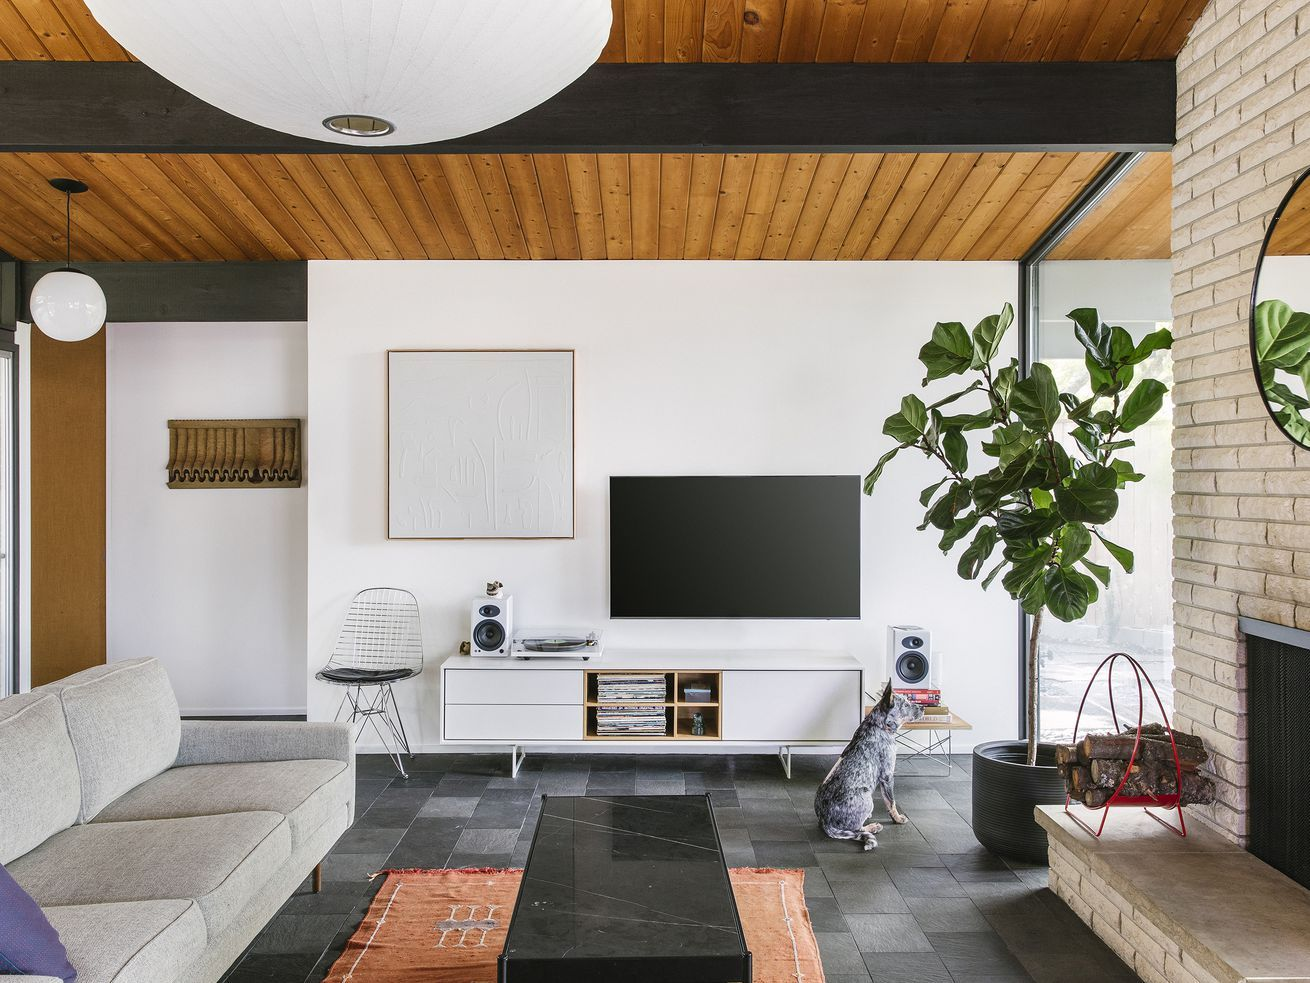 A portland couple trades in a farmhouse for their midcentury dream